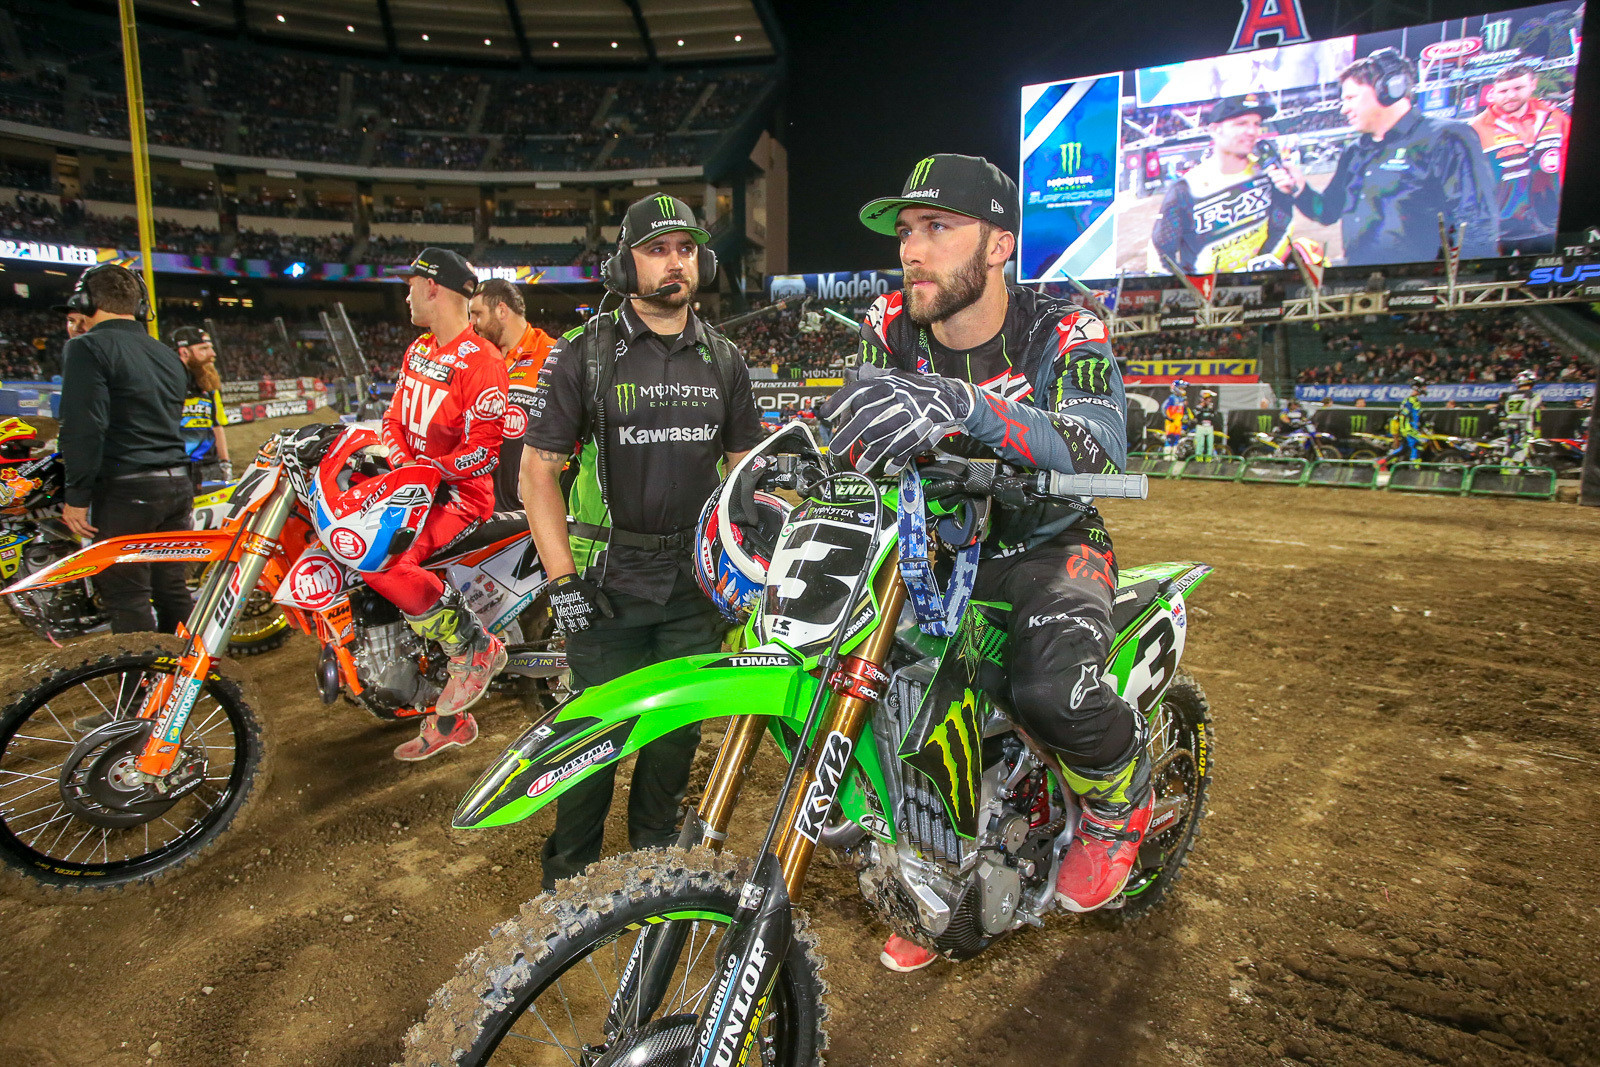 Round three of the 2019 Monster Energy Supercross series at Angel Stadium featured the first Triple Crown event of the year. It's weird to think that Eli Tomac hadn't won a race yet, but with three main events on top, his odds were good. While he hadn't grabbed a checkered flag yet, he's still in a much better place than he was a year ago.